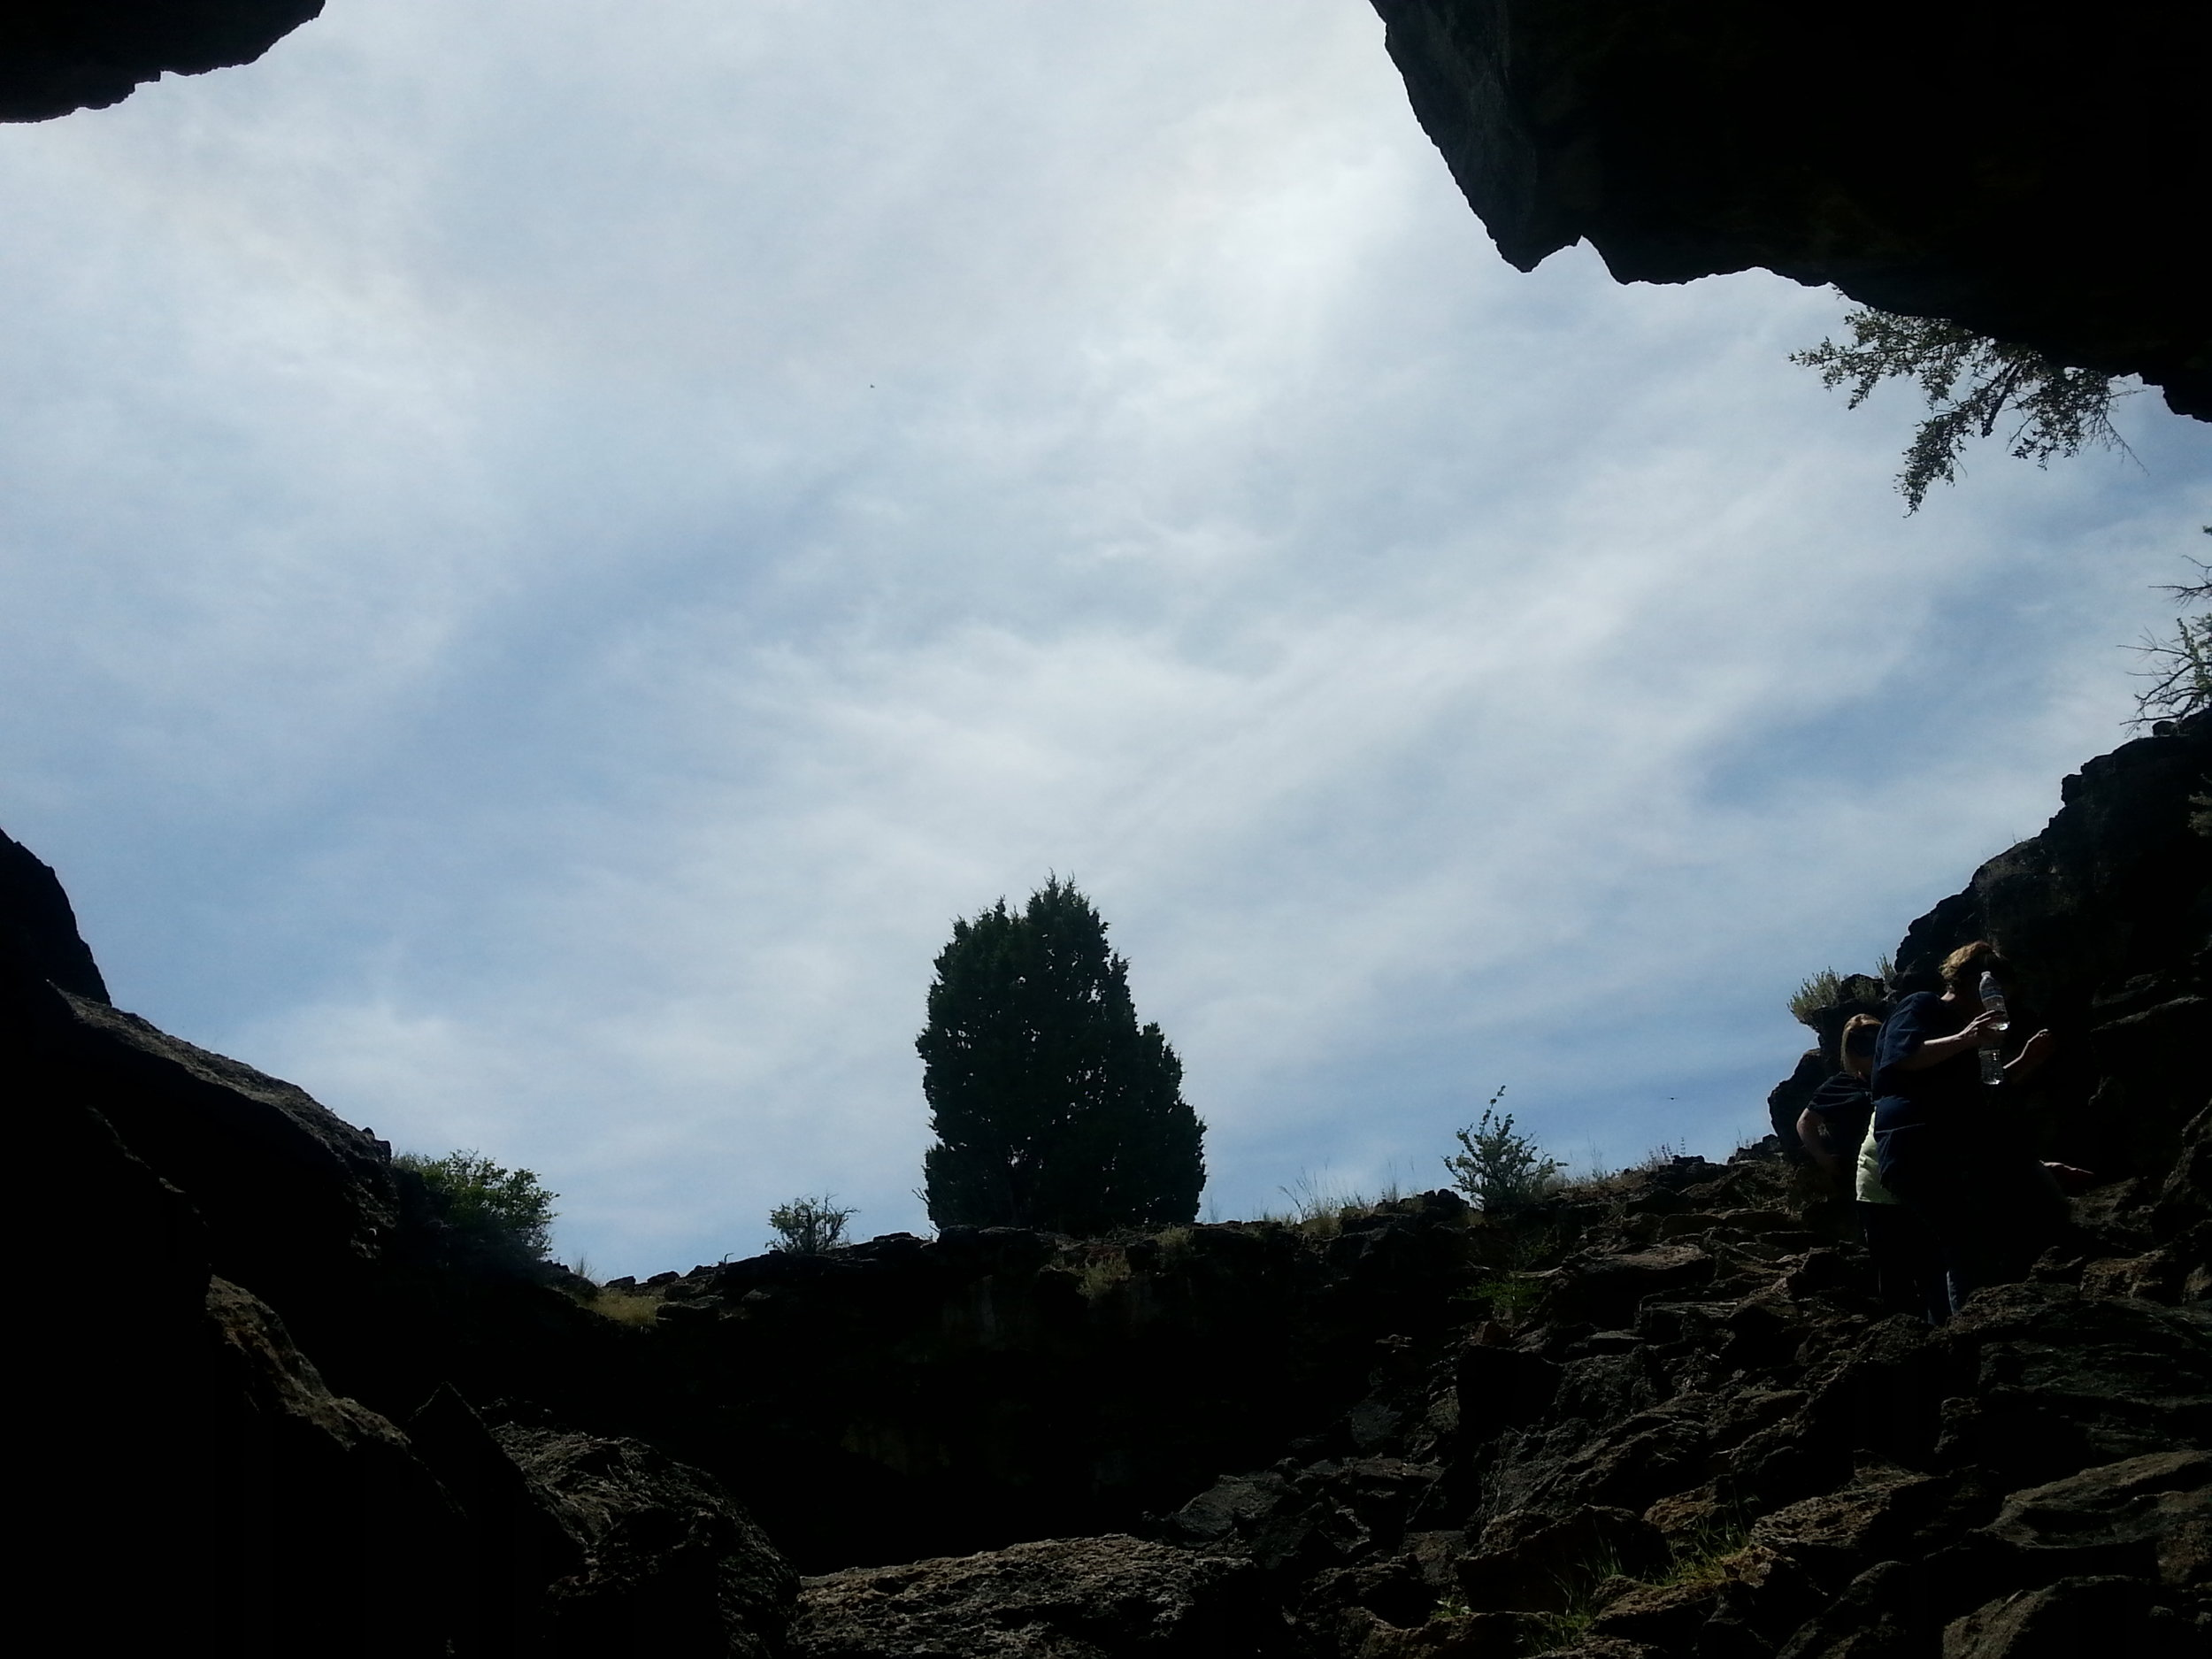 LAVA BEDS NATIONAL MONUMENT - What to do in Southern Oregon- Things to do - Hiking - Caves - Kids - Junior Rangers